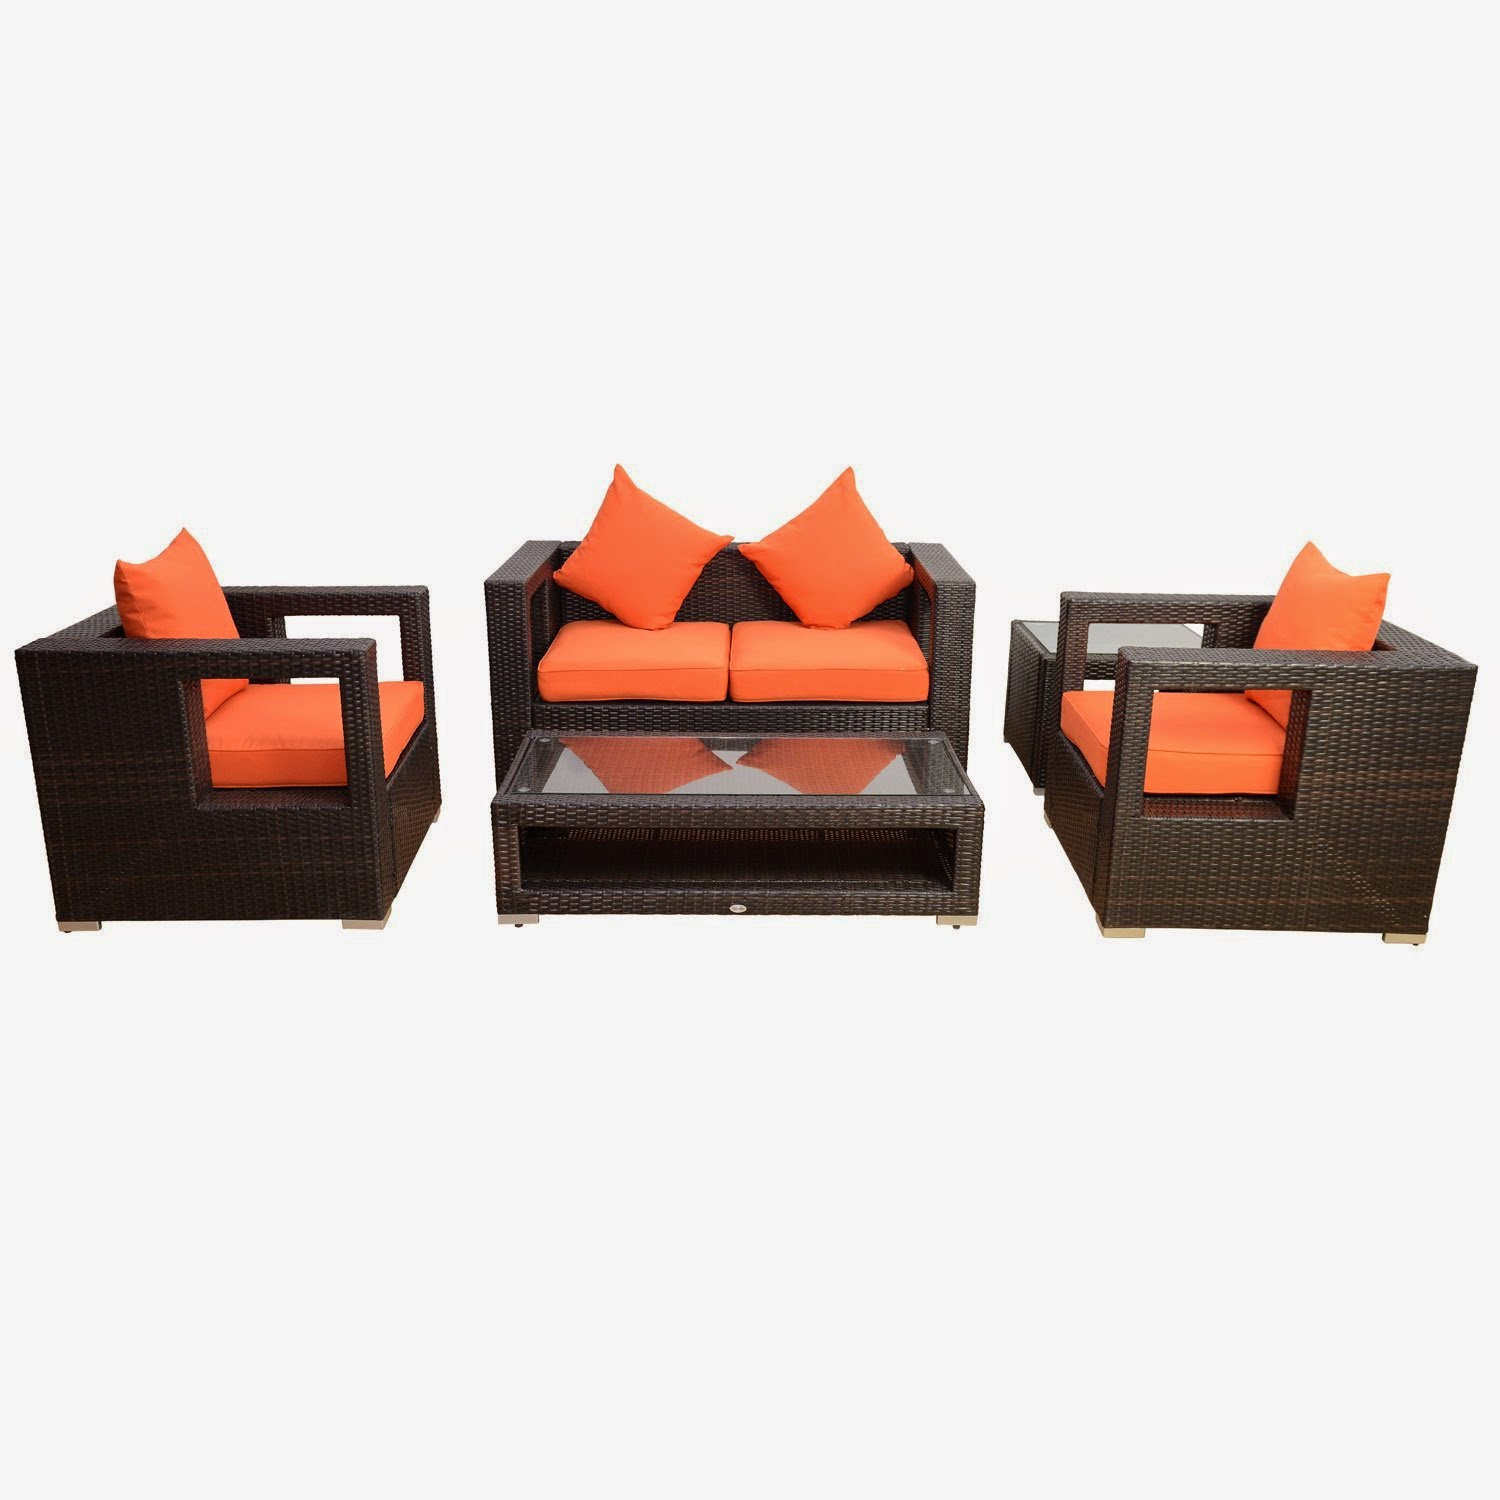 Outsunny 5pc Outdoor PE Rattan Wicker Sectional Loveseat Sofa Set